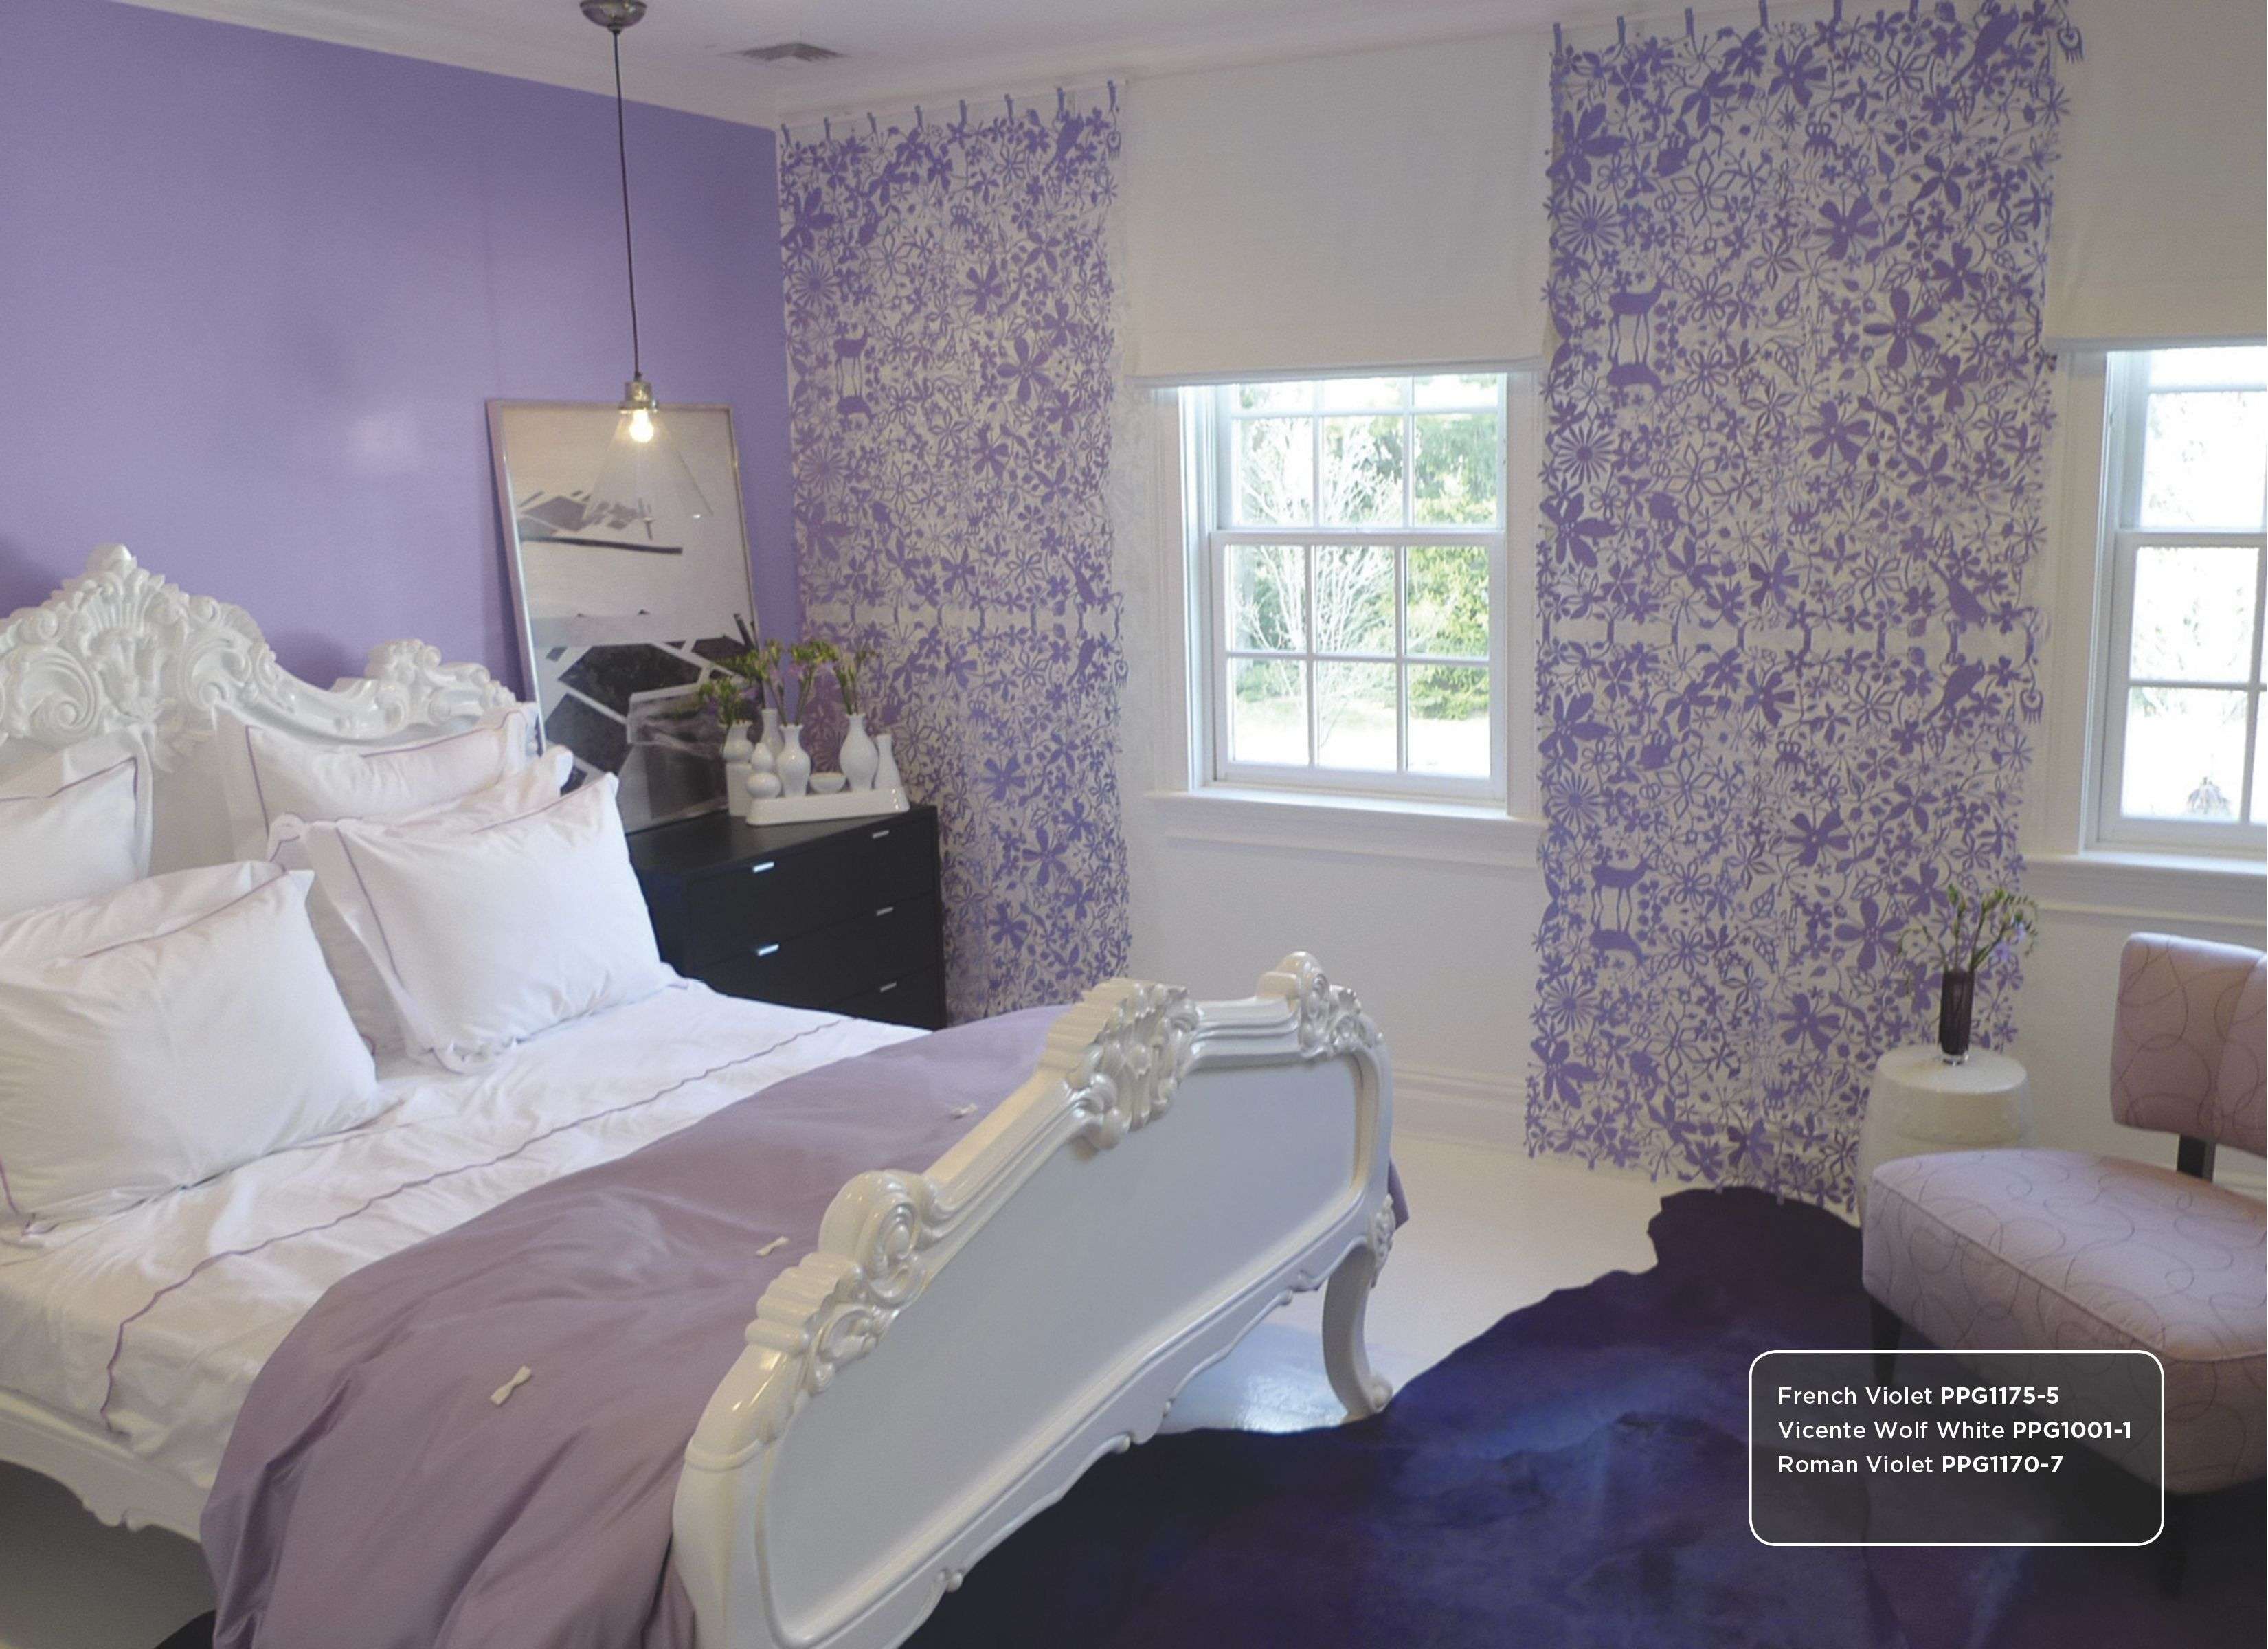 Paint Colors For Bedrooms Purple Purple Wall Color Inspiration Includes Roman Violet Ppg1170 7 And